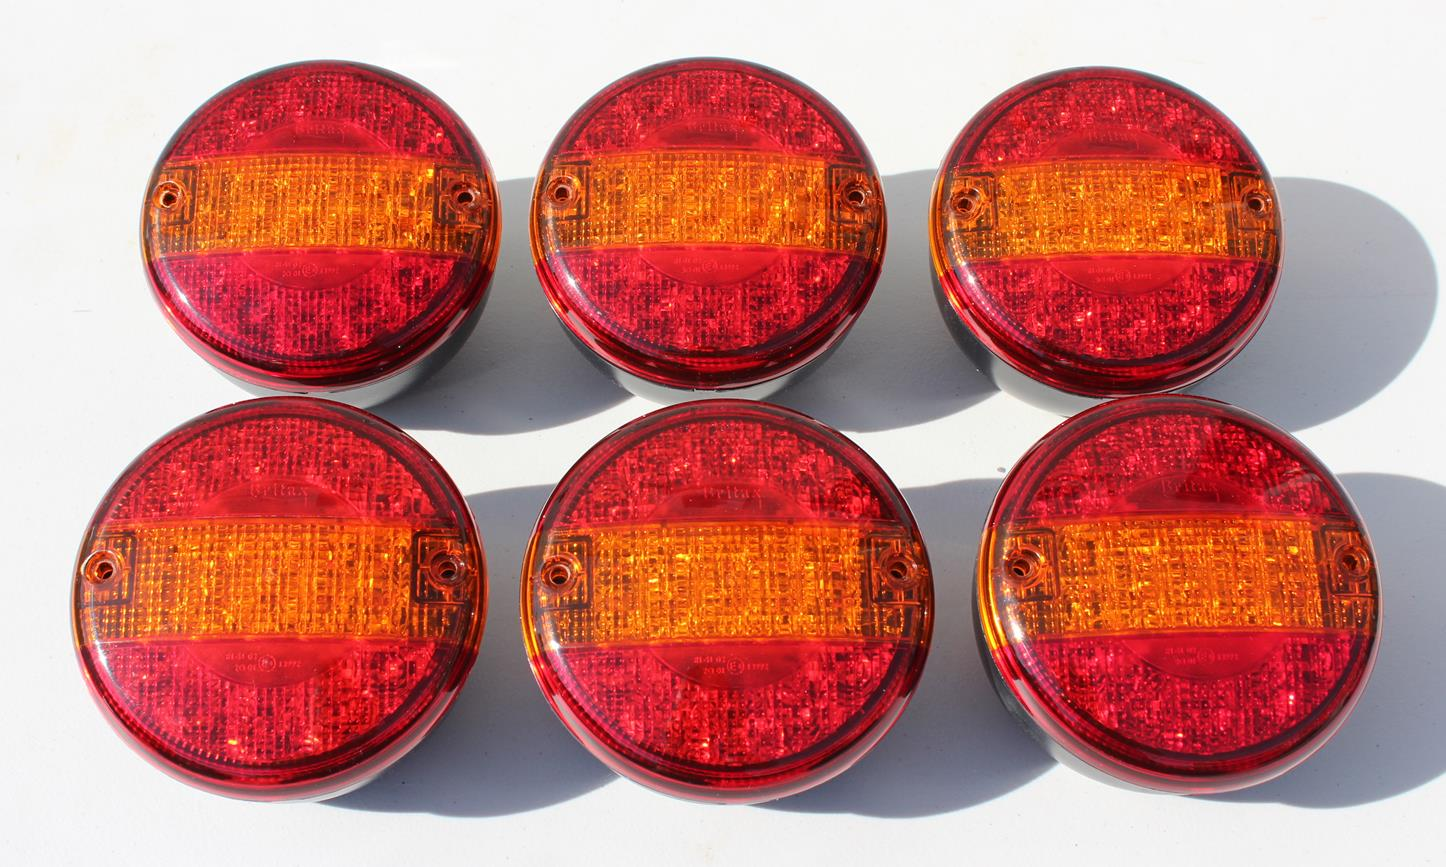 6x Britax L14 LED single rear combination lamps